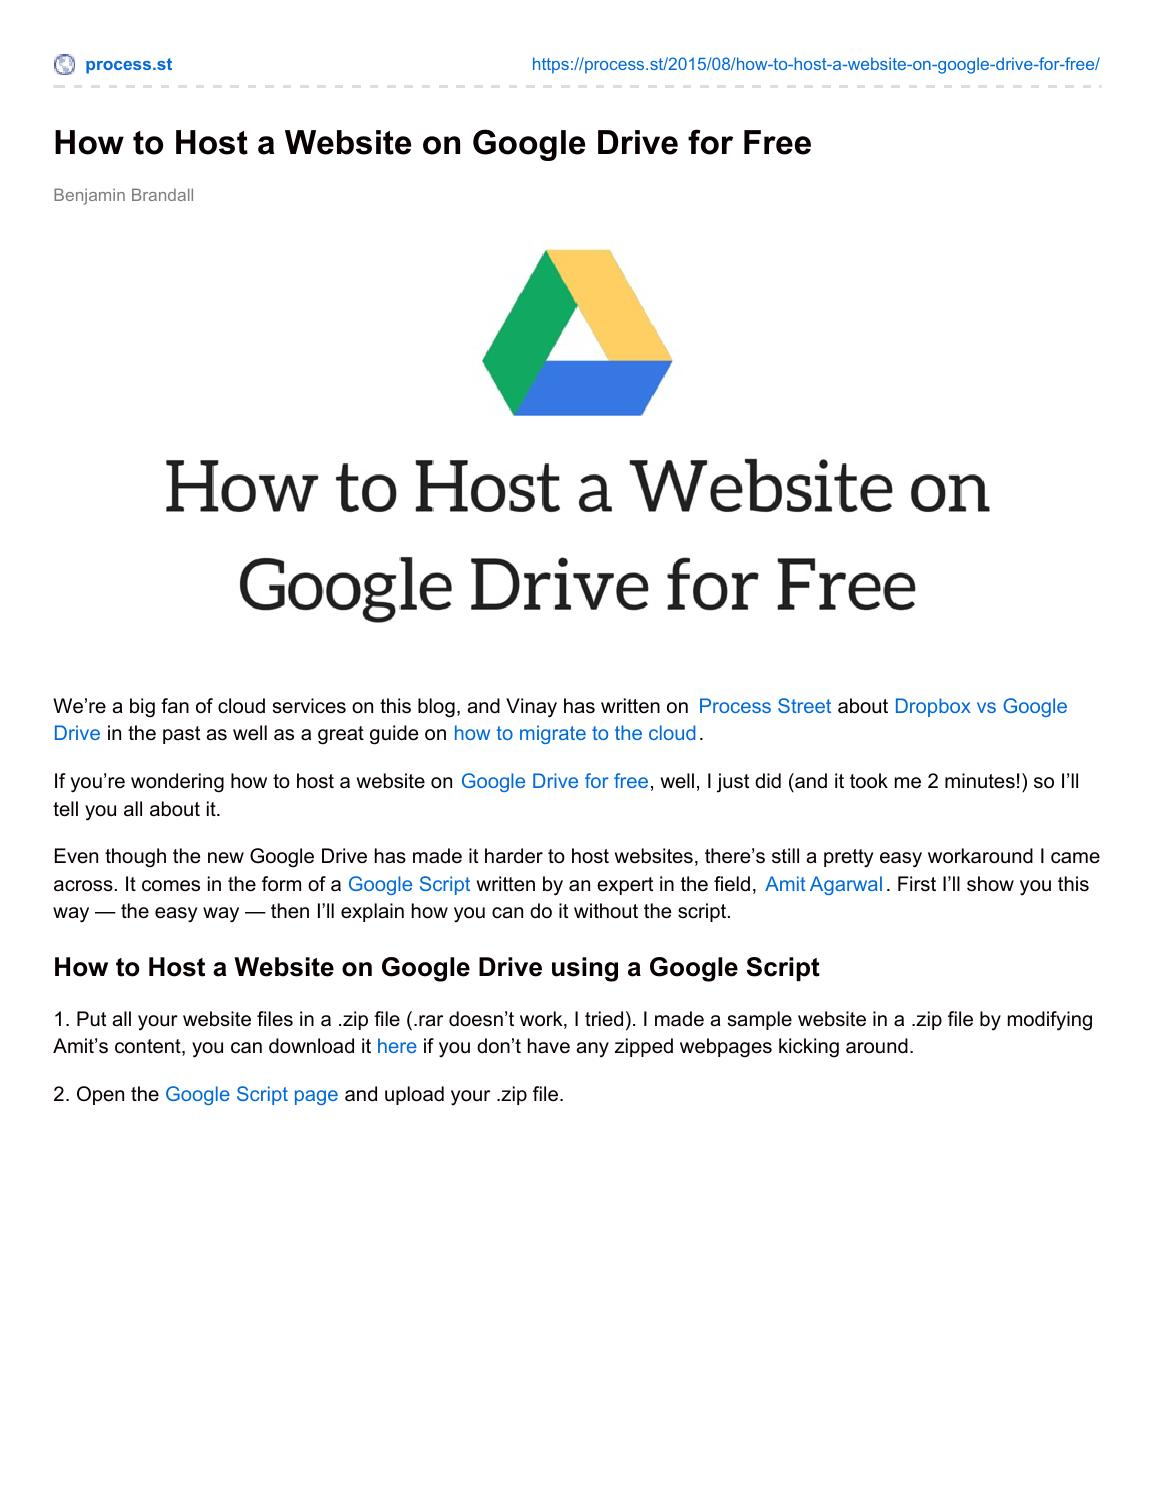 How to Host a Website on Google Drive for Free by